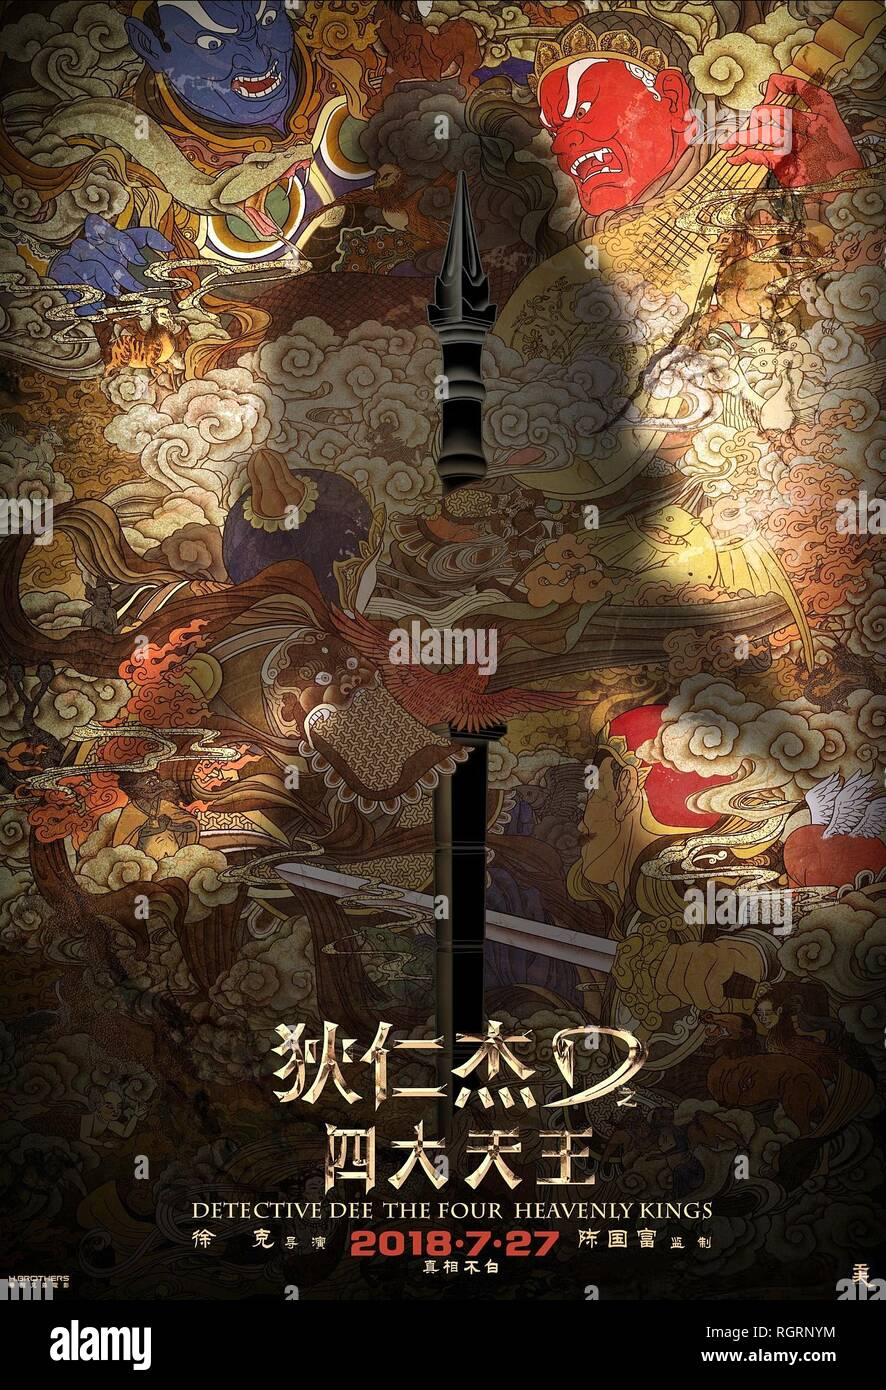 MOVIE POSTER DETECTIVE DEE: THE FOUR HEAVENLY KINGS; DI RENJIE ZHI SIDATIANWANG (2018) - Stock Image